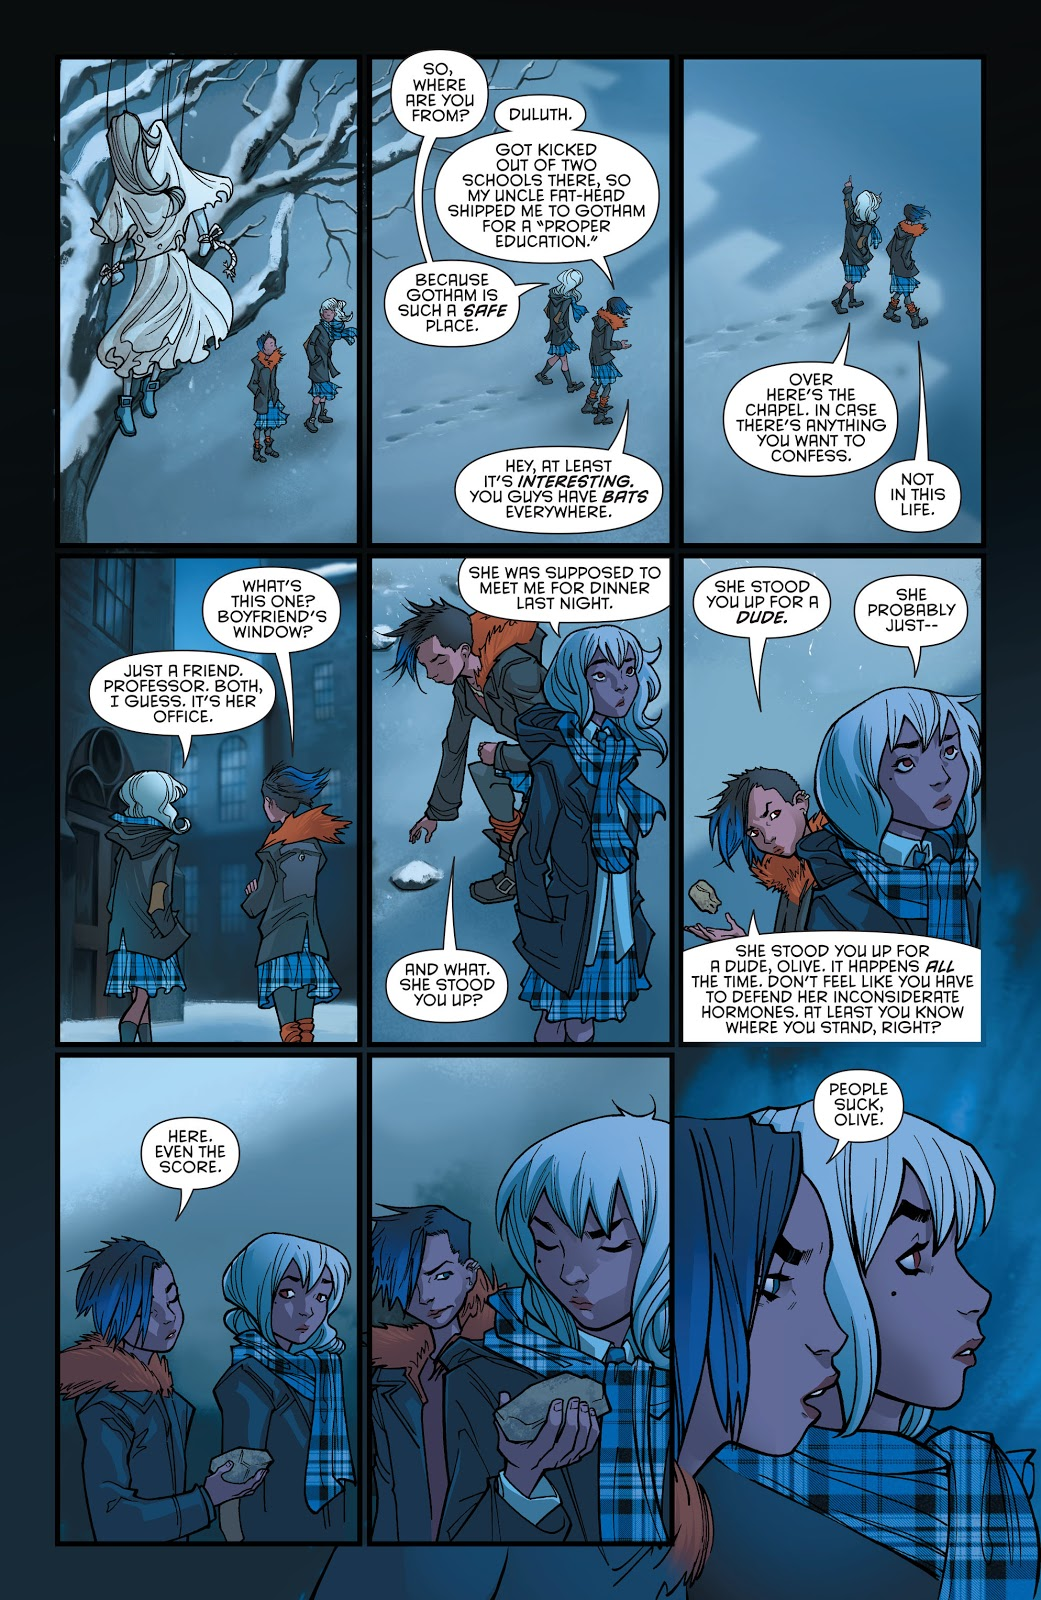 Gotham Academy Second Semester Welcome Back review